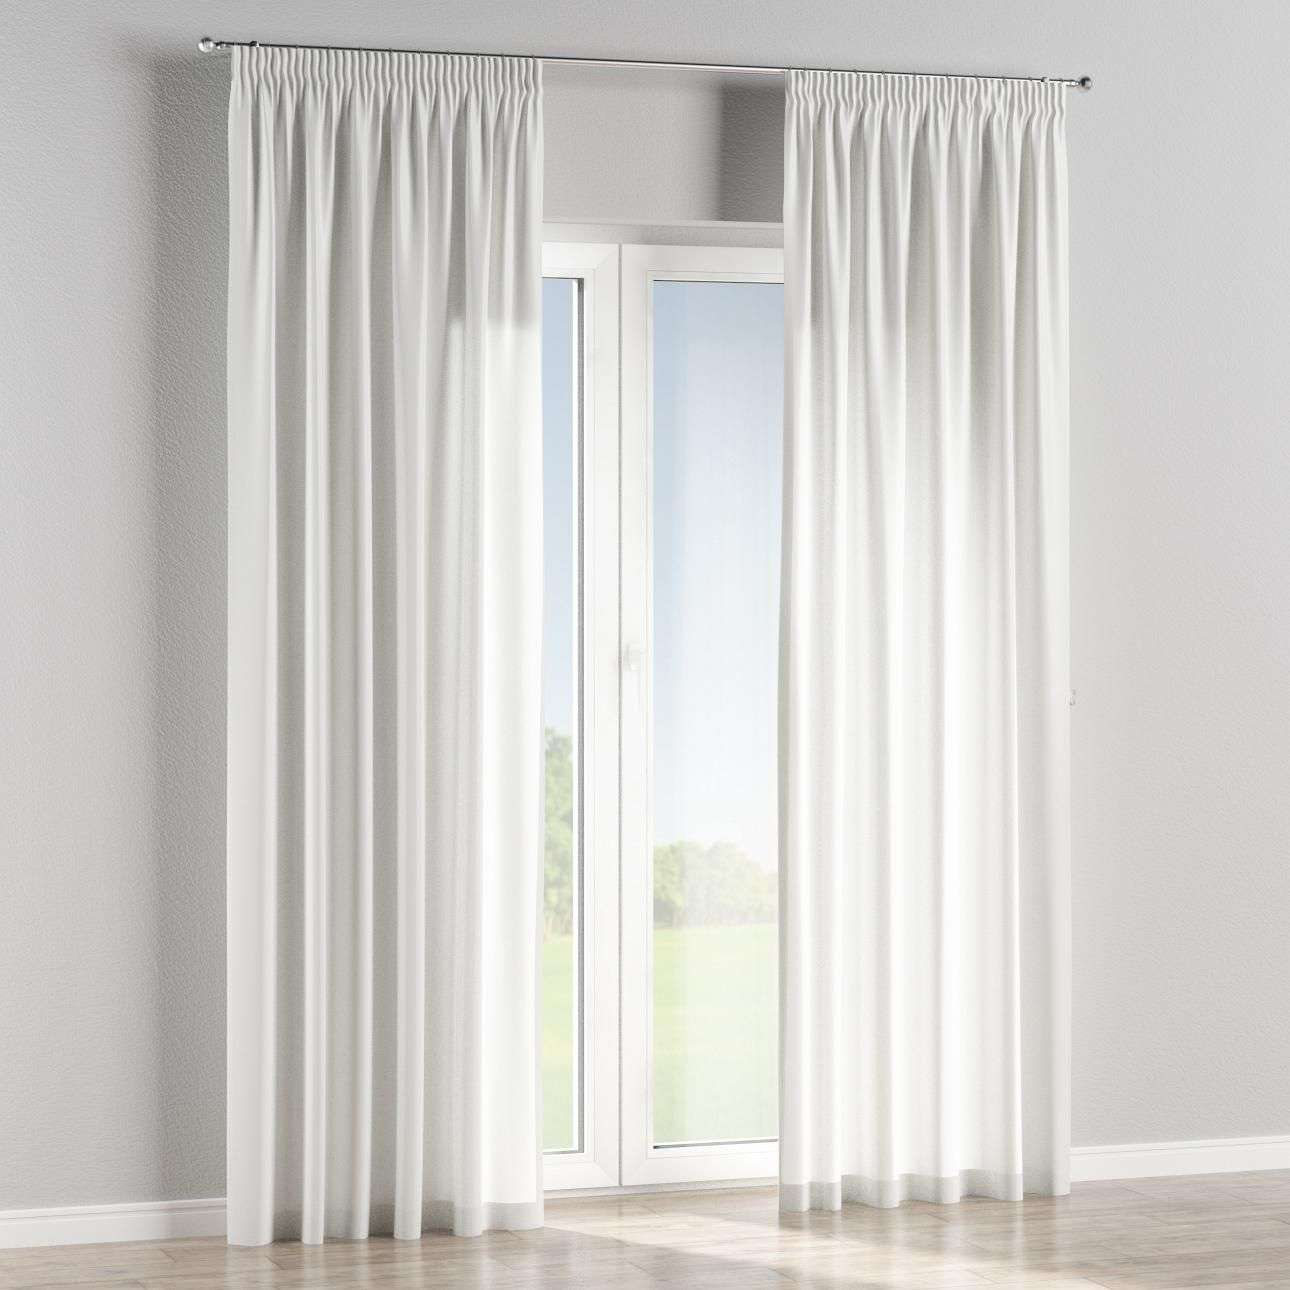 Pencil pleat lined curtains in collection Ashley, fabric: 137-43